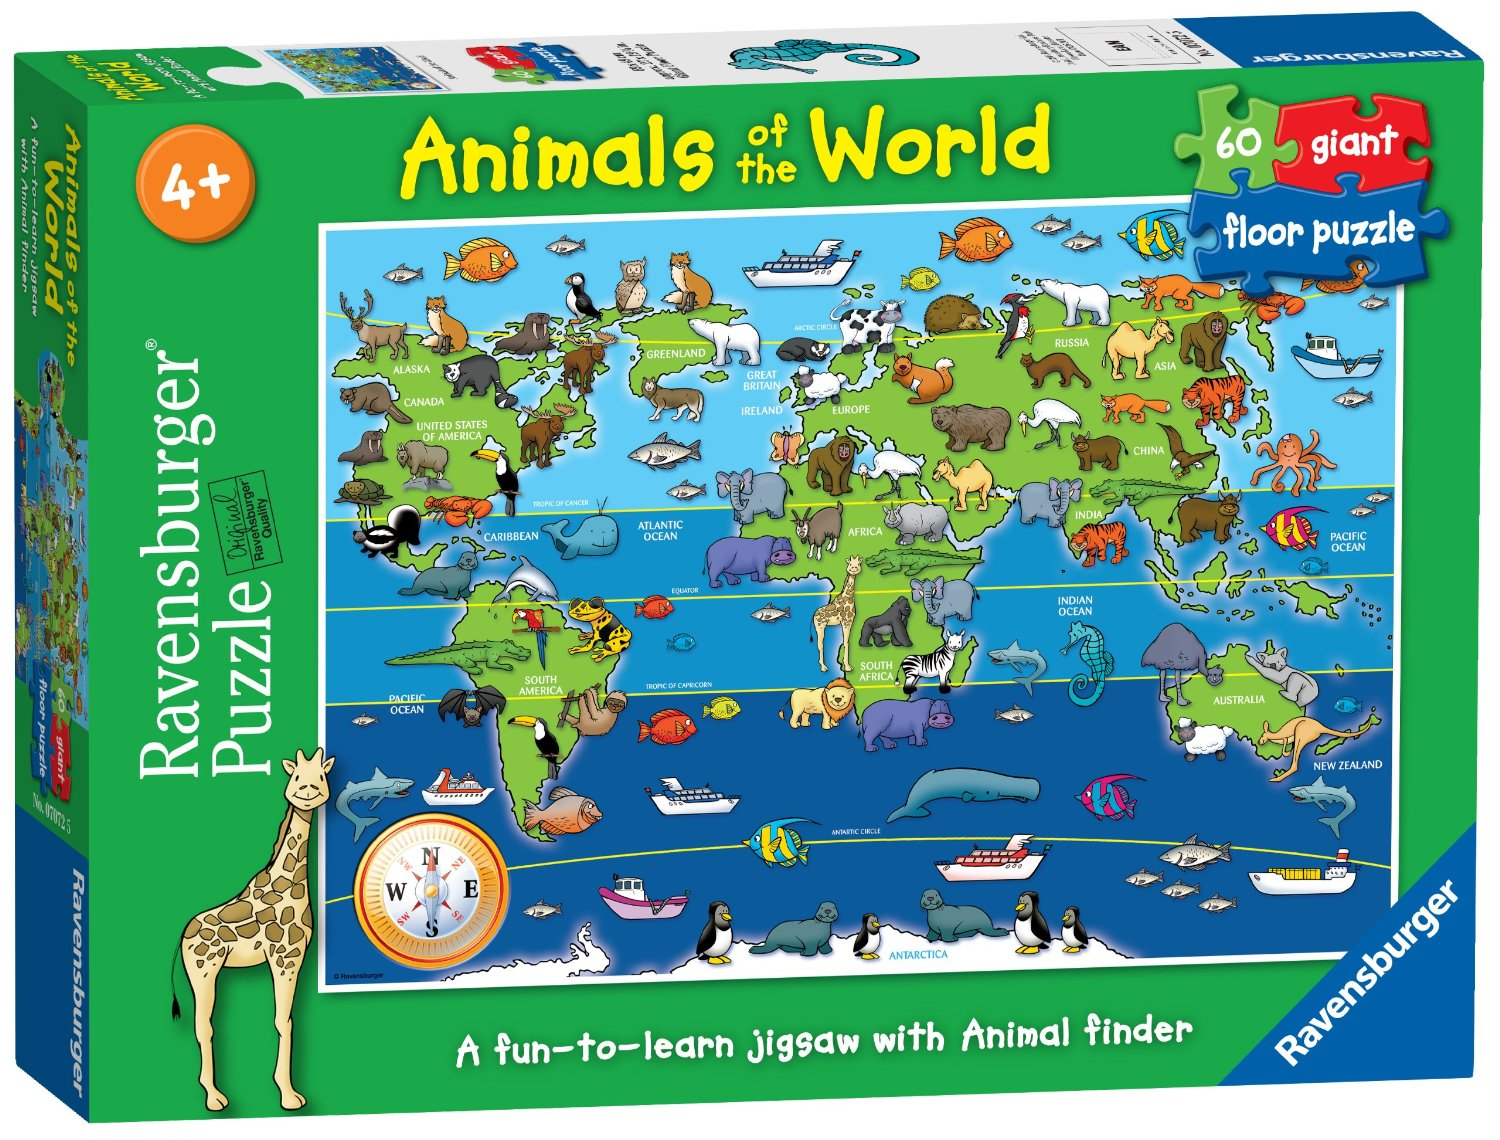 Ravensburger puzzle animals of the world giant floor puzzle 60 piece ravensburger puzzle animals of the world giant floor puzzle 60 piece jac in a box gumiabroncs